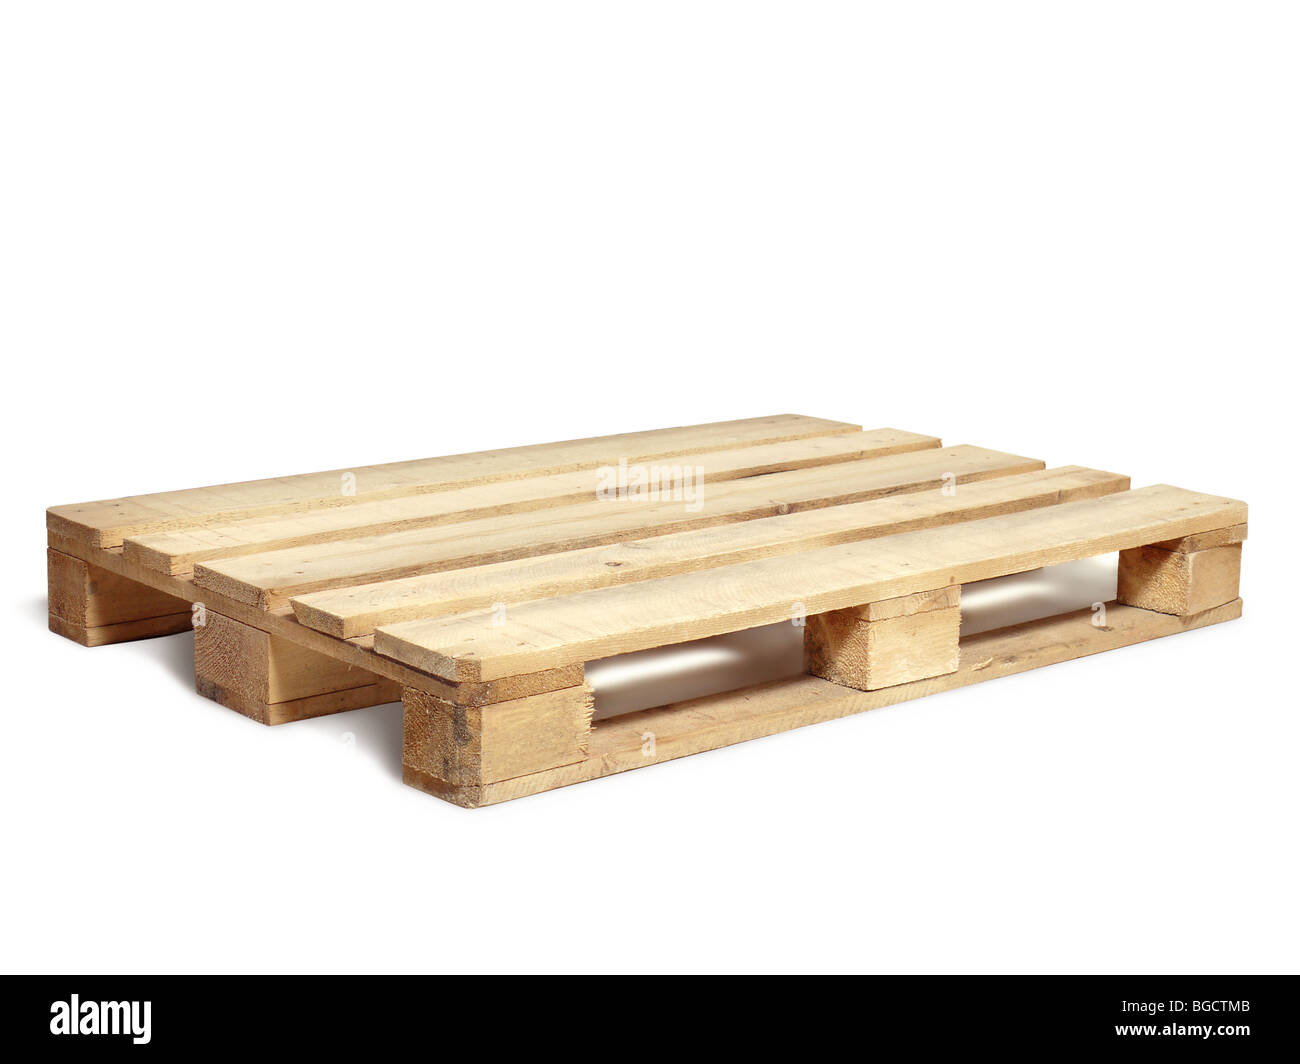 Wooden warehouse pallet shot over white background - Stock Image